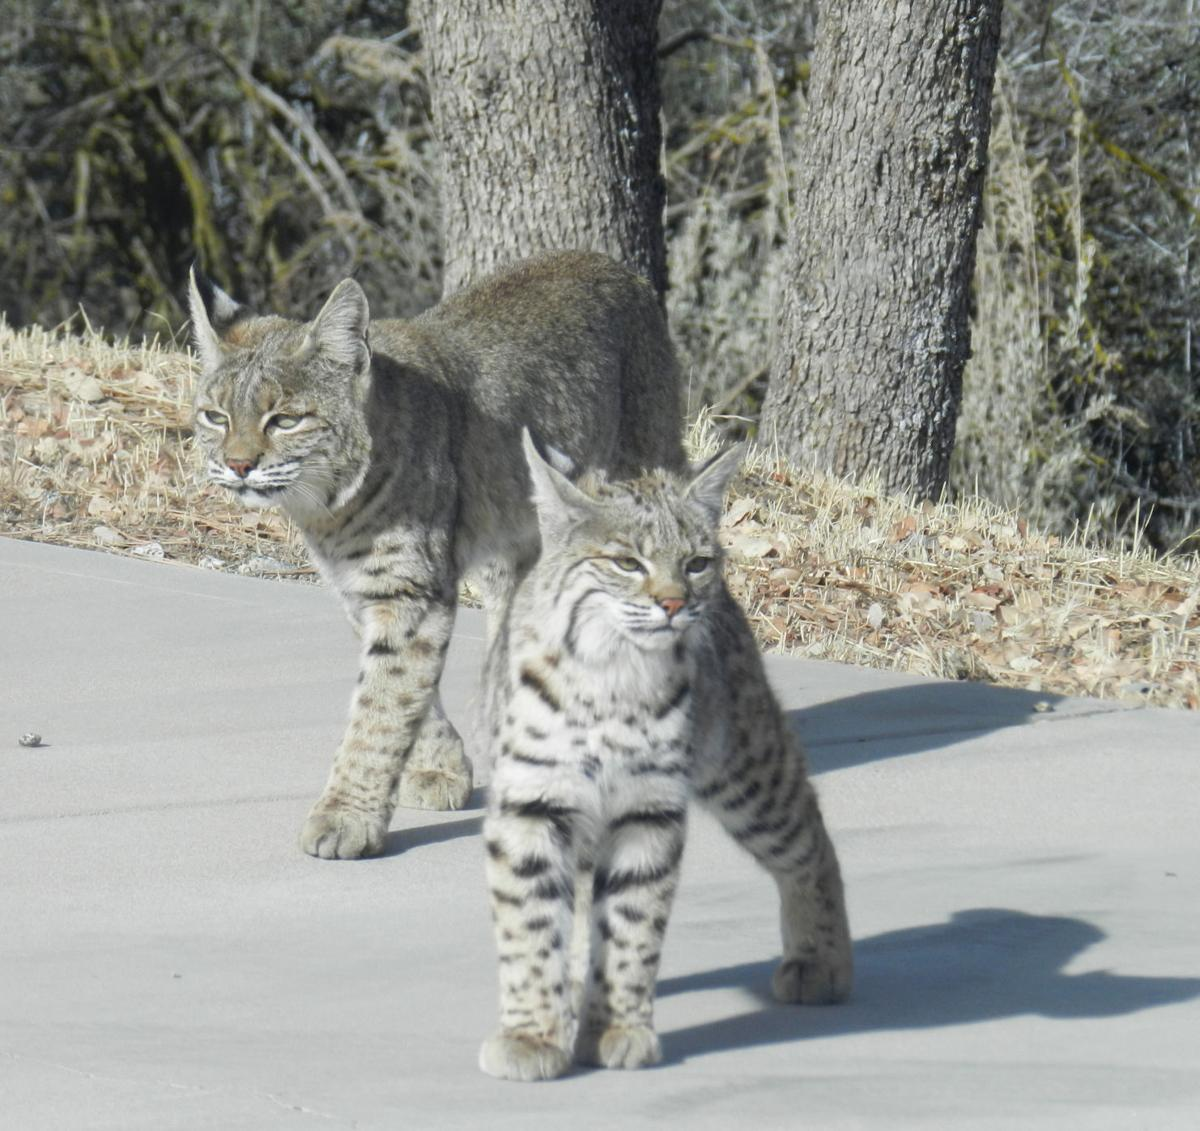 Pen In Hand Bobcat Moms Take On Major Parenting Role Lifestyle Tehachapinews Com